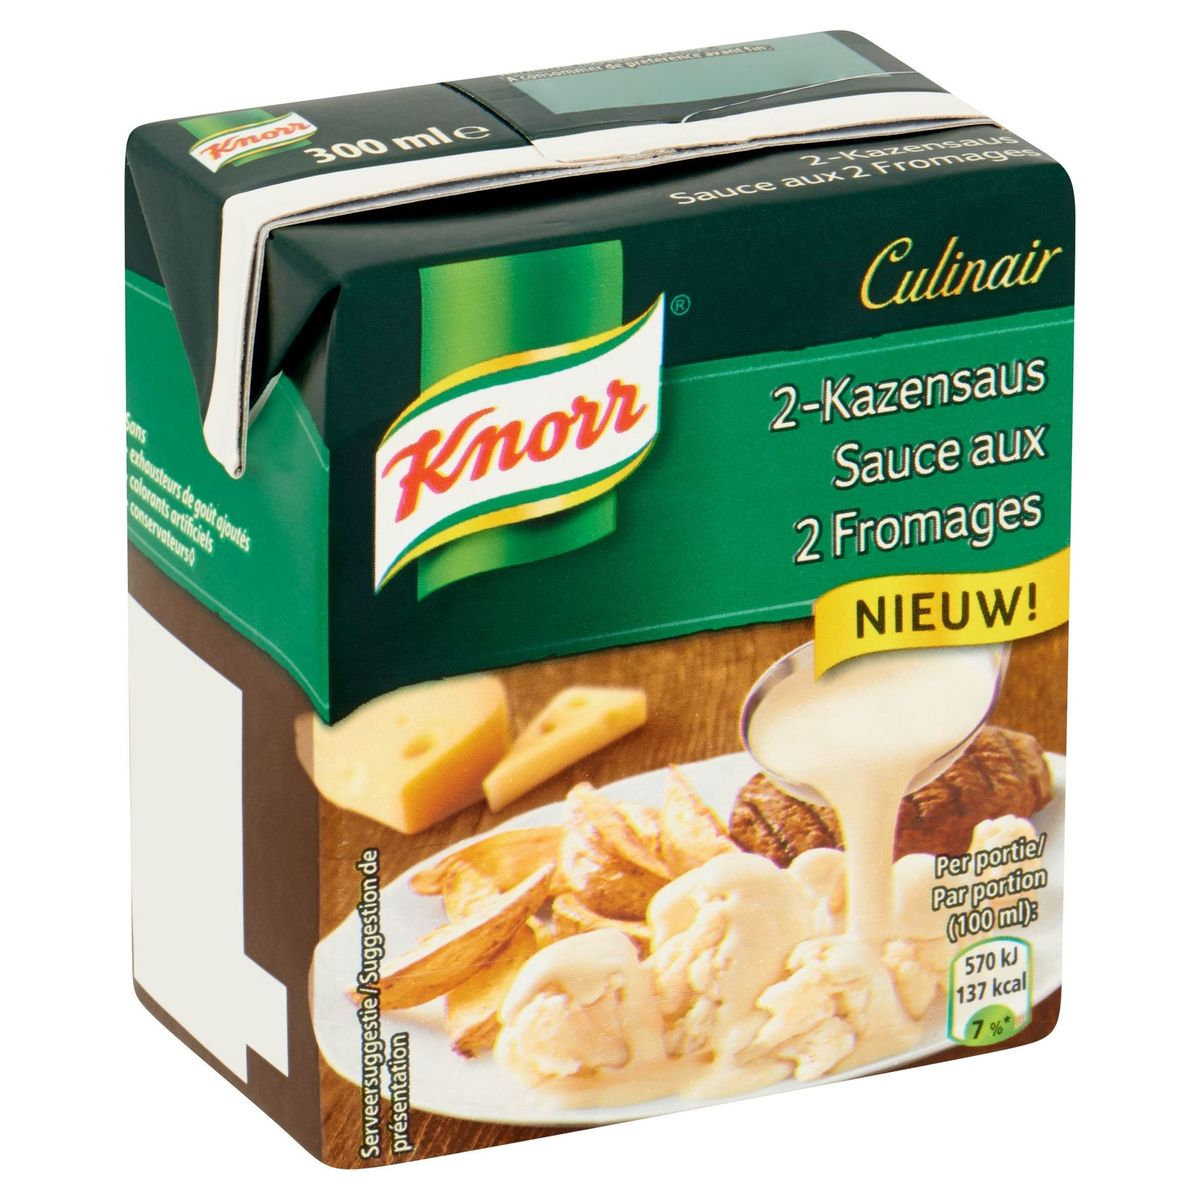 Knorr Culinair Sauce aux 2 Fromages 300 ml